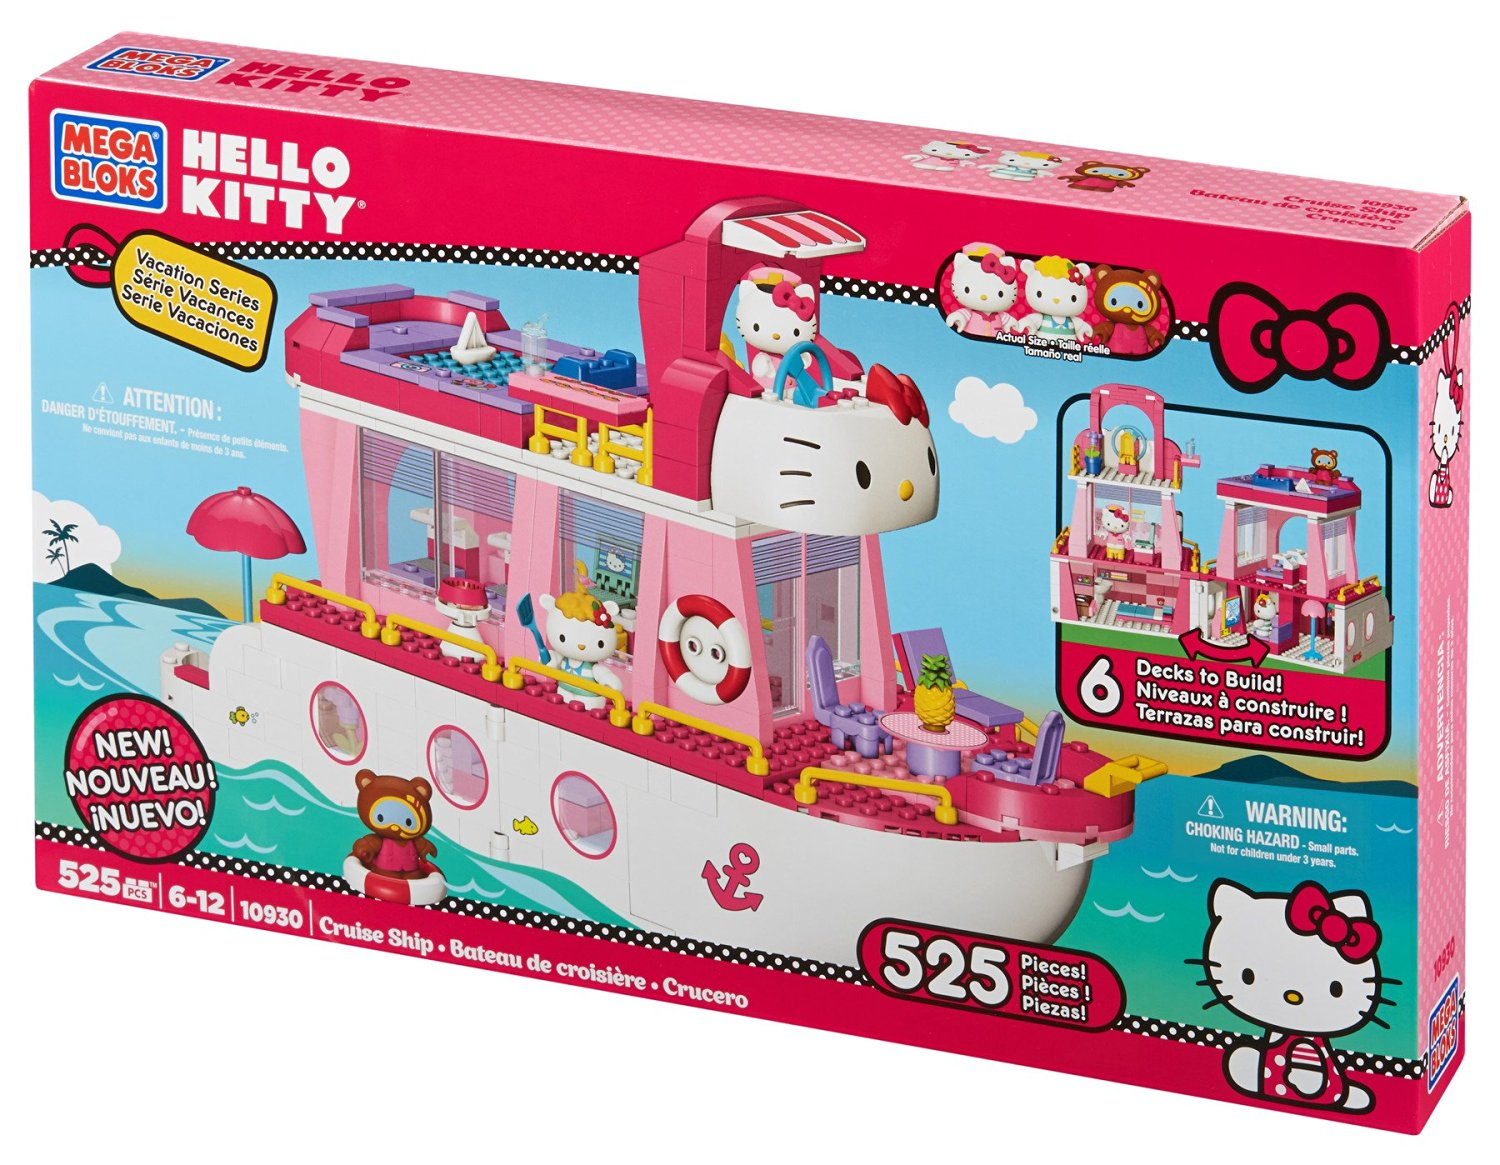 Mega Bloks Hello Kitty Cruise Ship